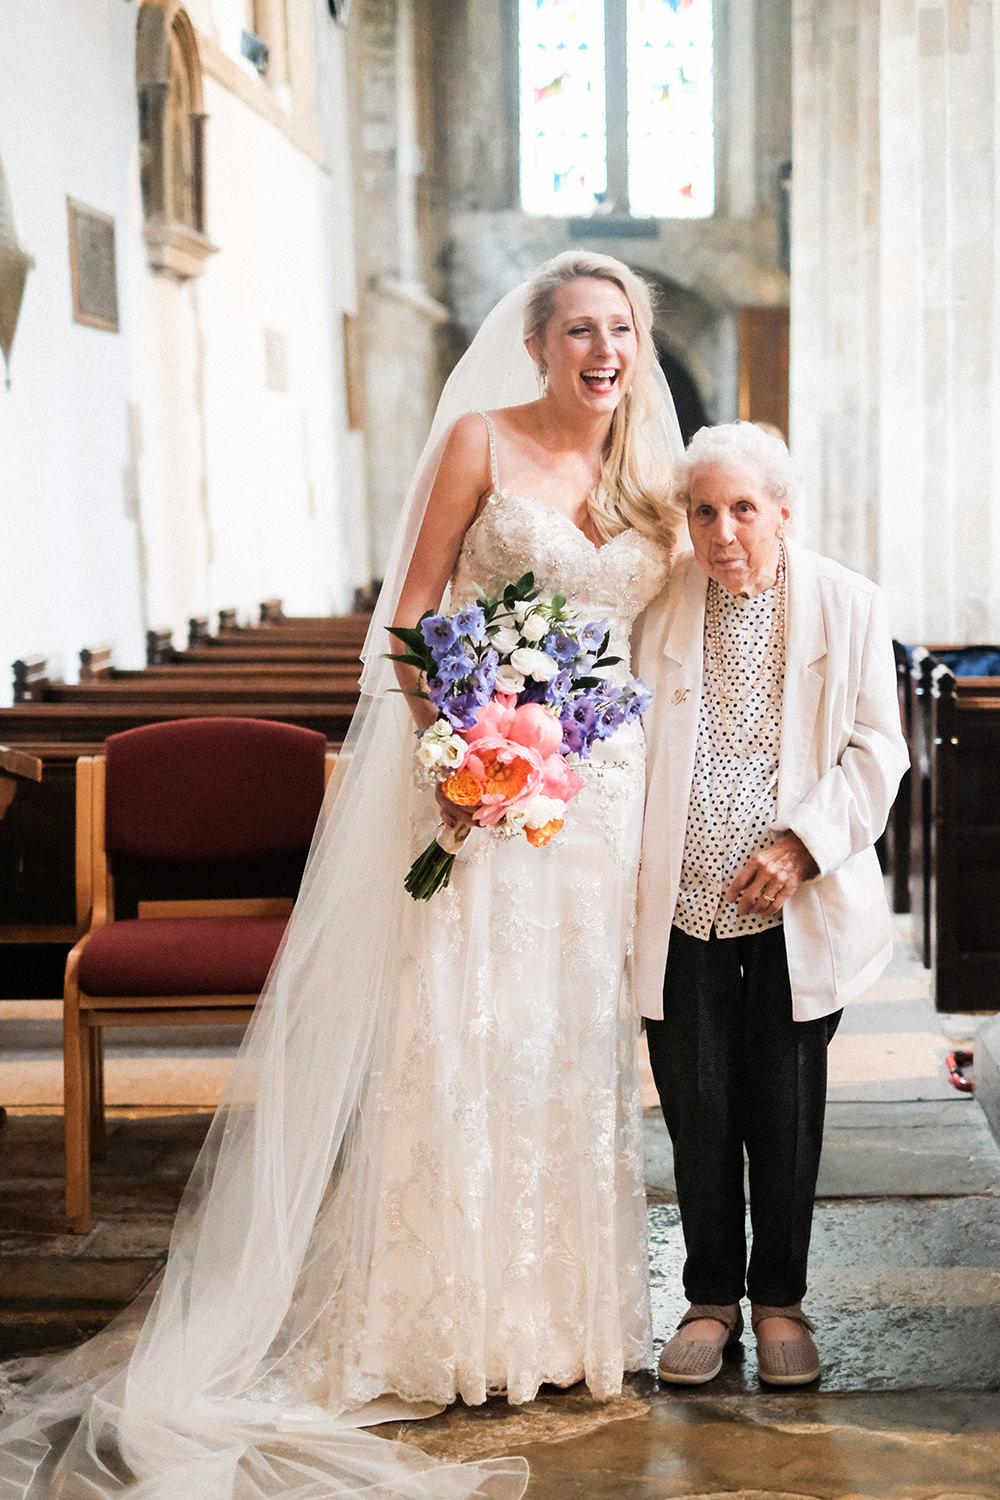 The bride (Gemma) and her nan, looking happy and very proud.